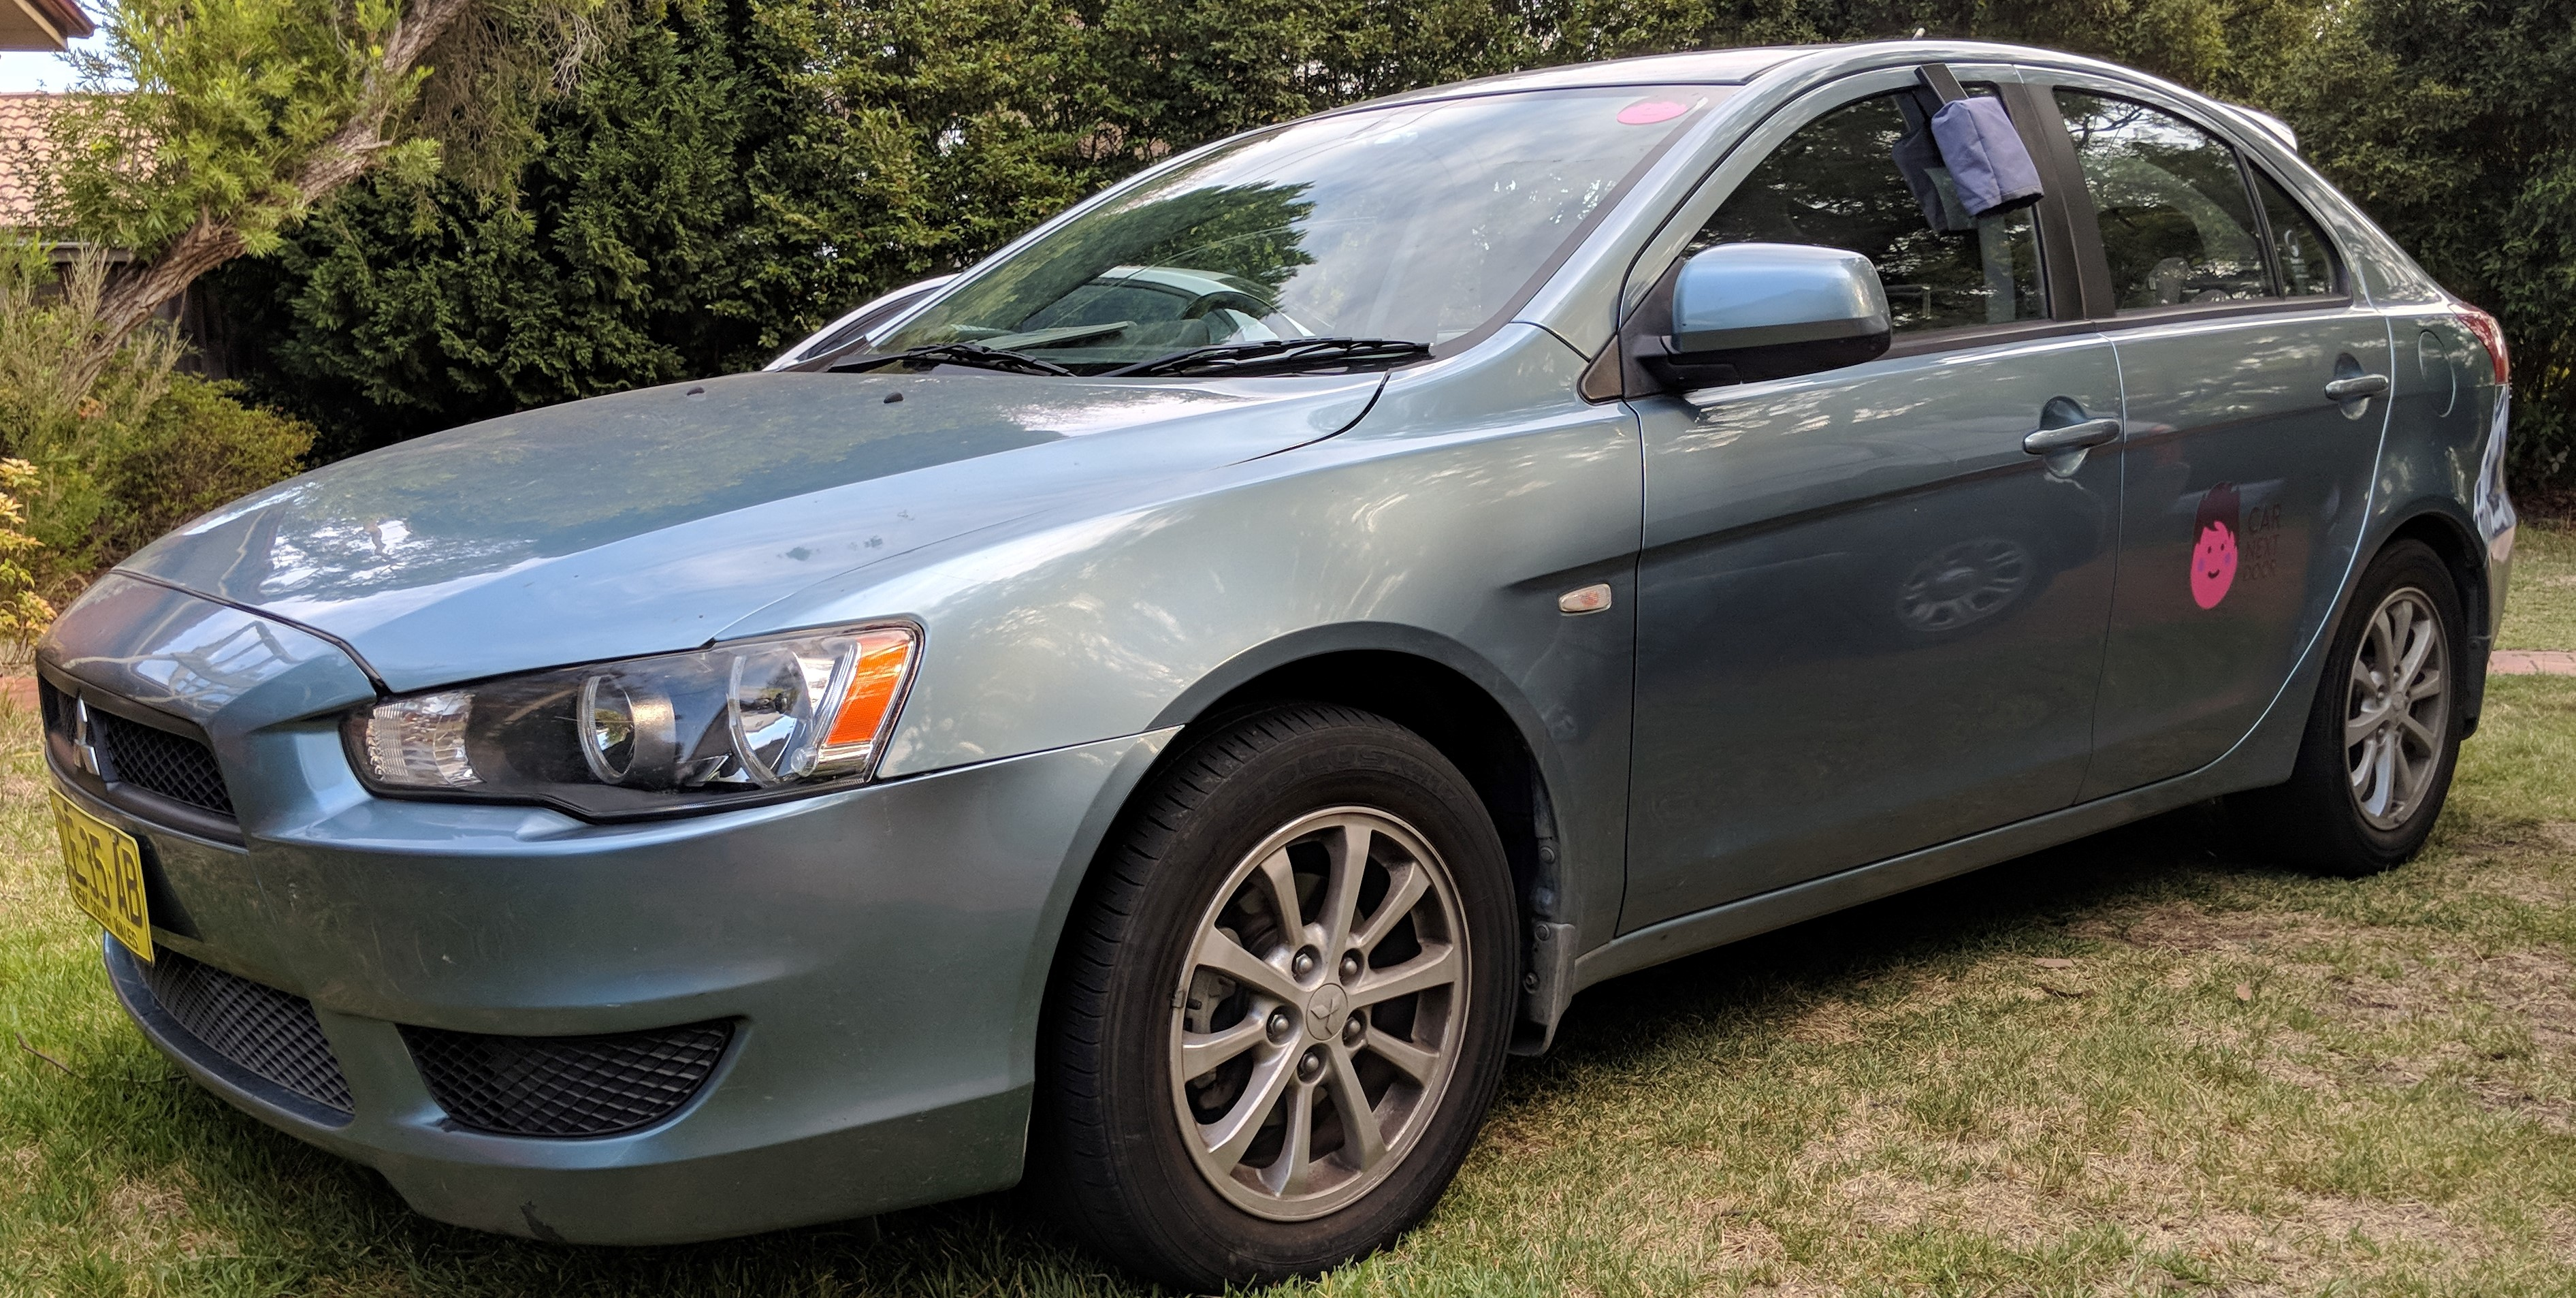 Picture of Gerardus' 2010 Mitsubishi Lancer